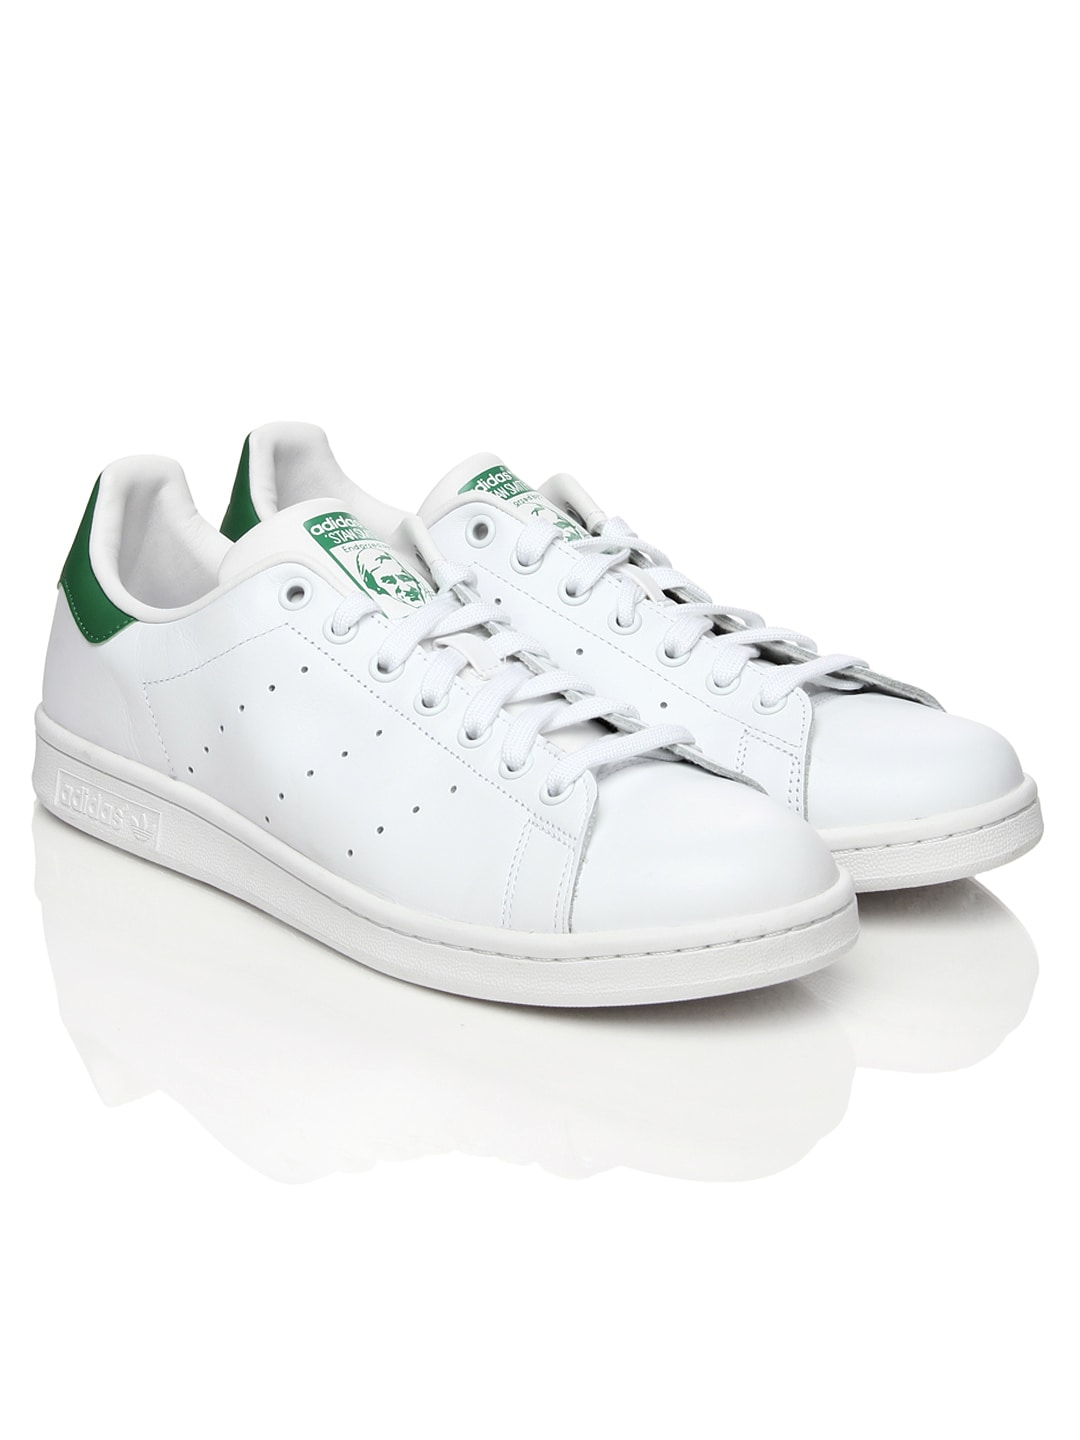 adidas stan smith wikipedia e8b20ef5d0771